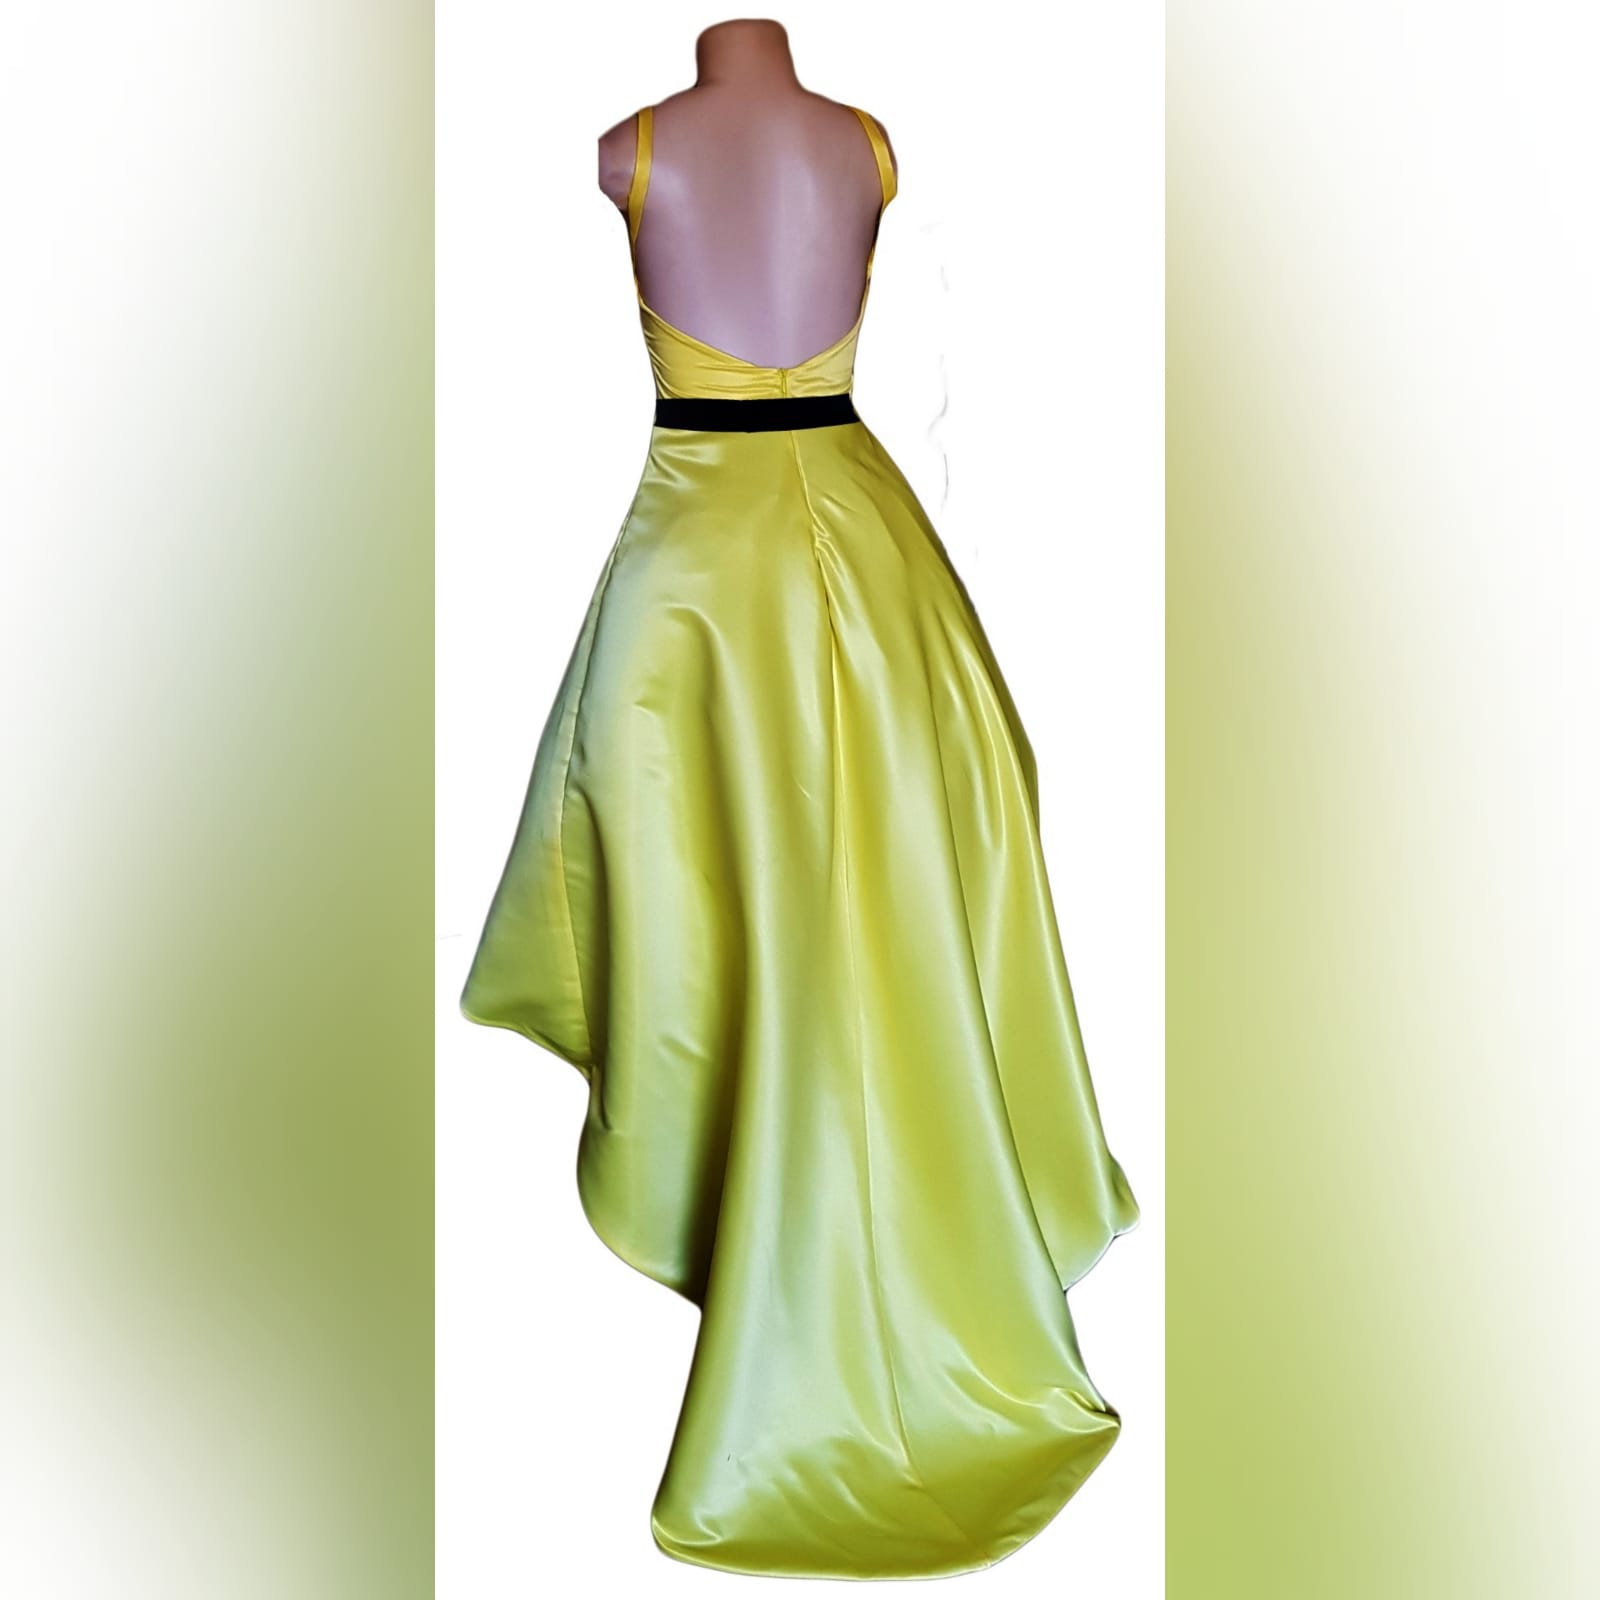 Yellow and black high low prom dress 6 yellow & black high low prom dress with an open back, pockets and a detachable black belt